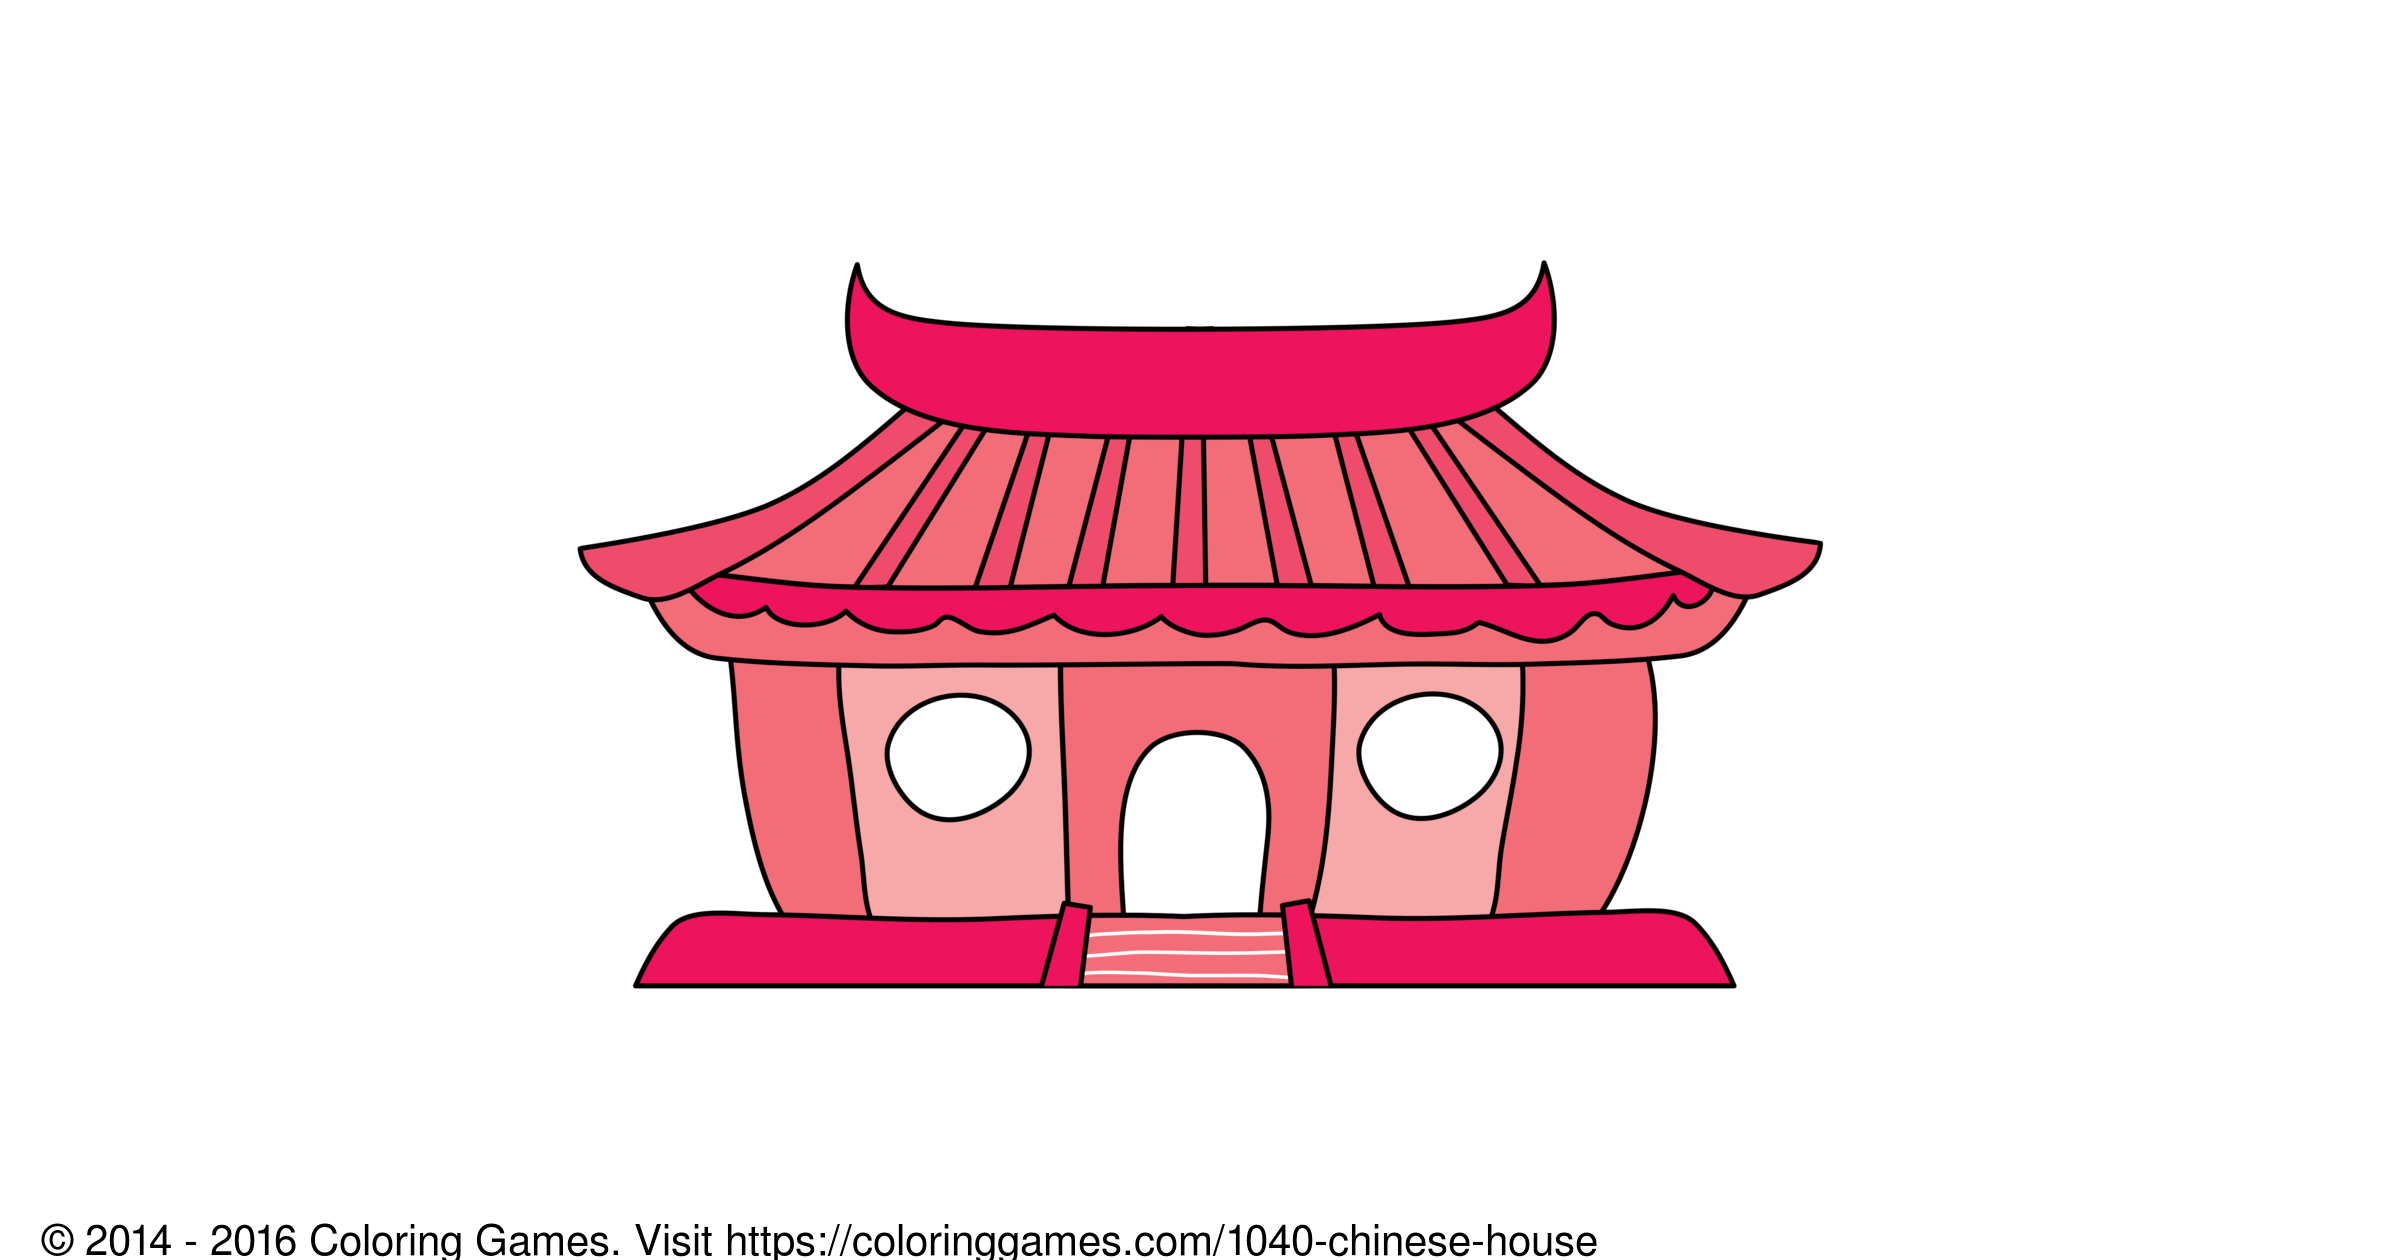 Chinese House - Coloring Games and Coloring Pages